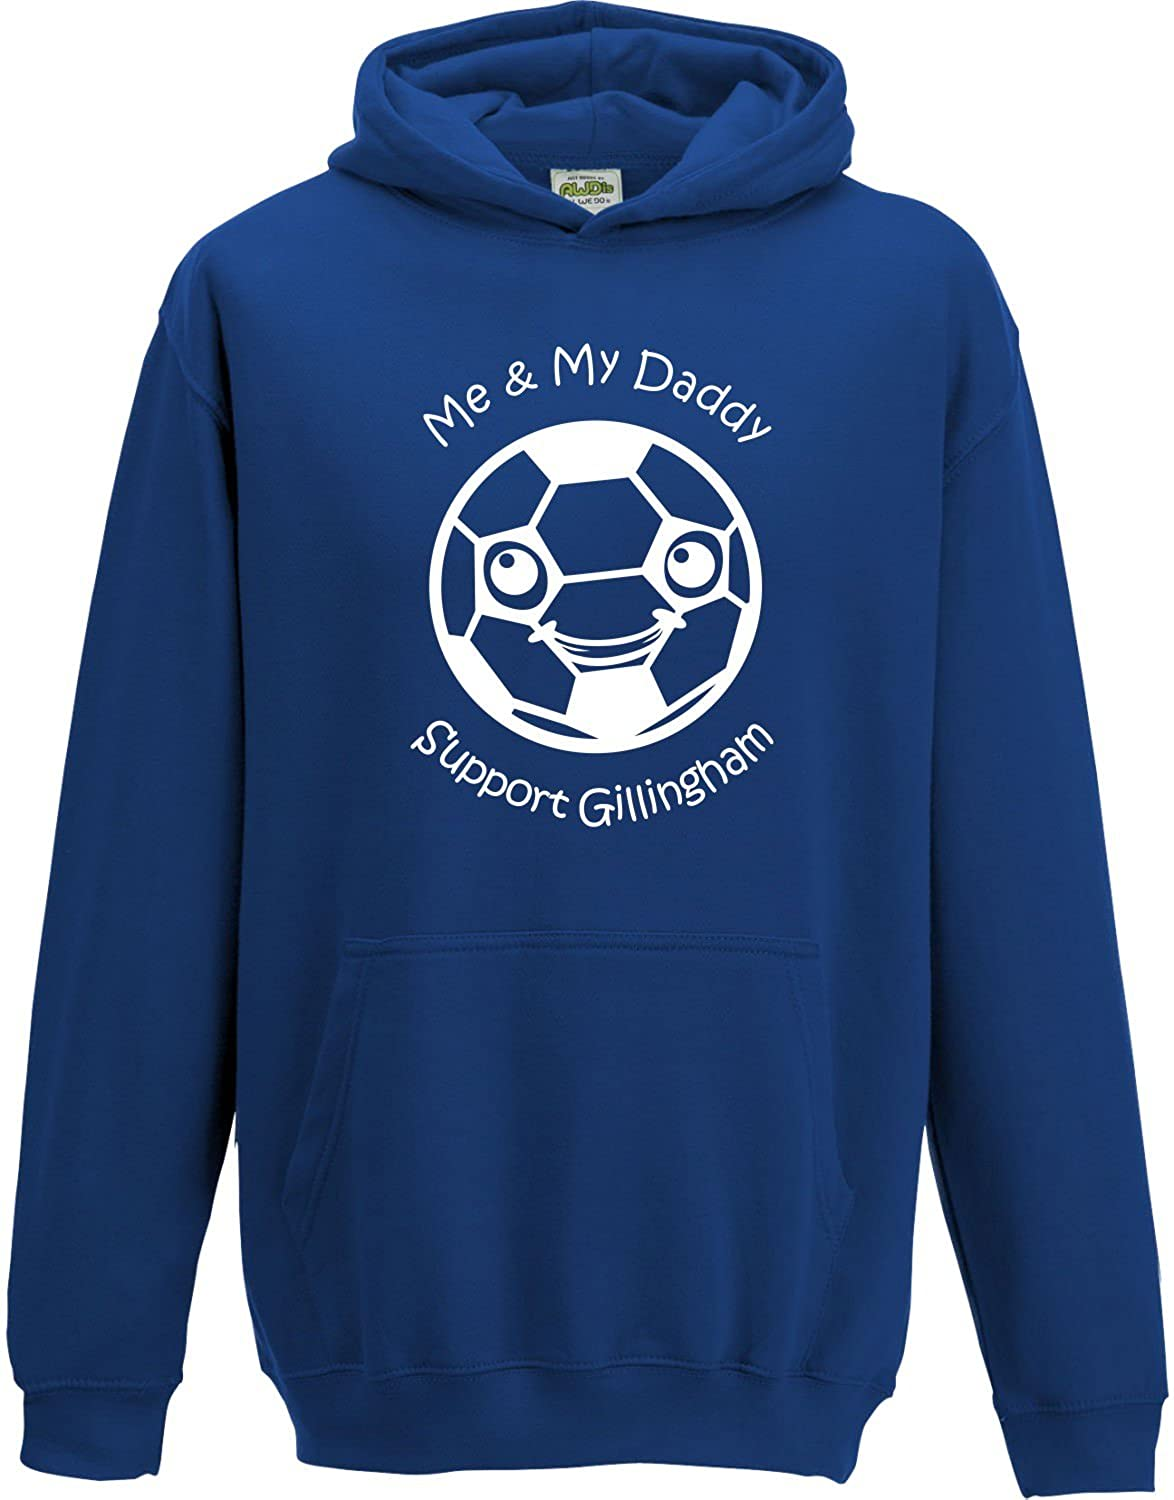 Hat-Trick Designs Gillingham Football Baby/Kids/Childrens Hoodie Sweatshirt-Royal Blue-Me & My-Unisex Gift